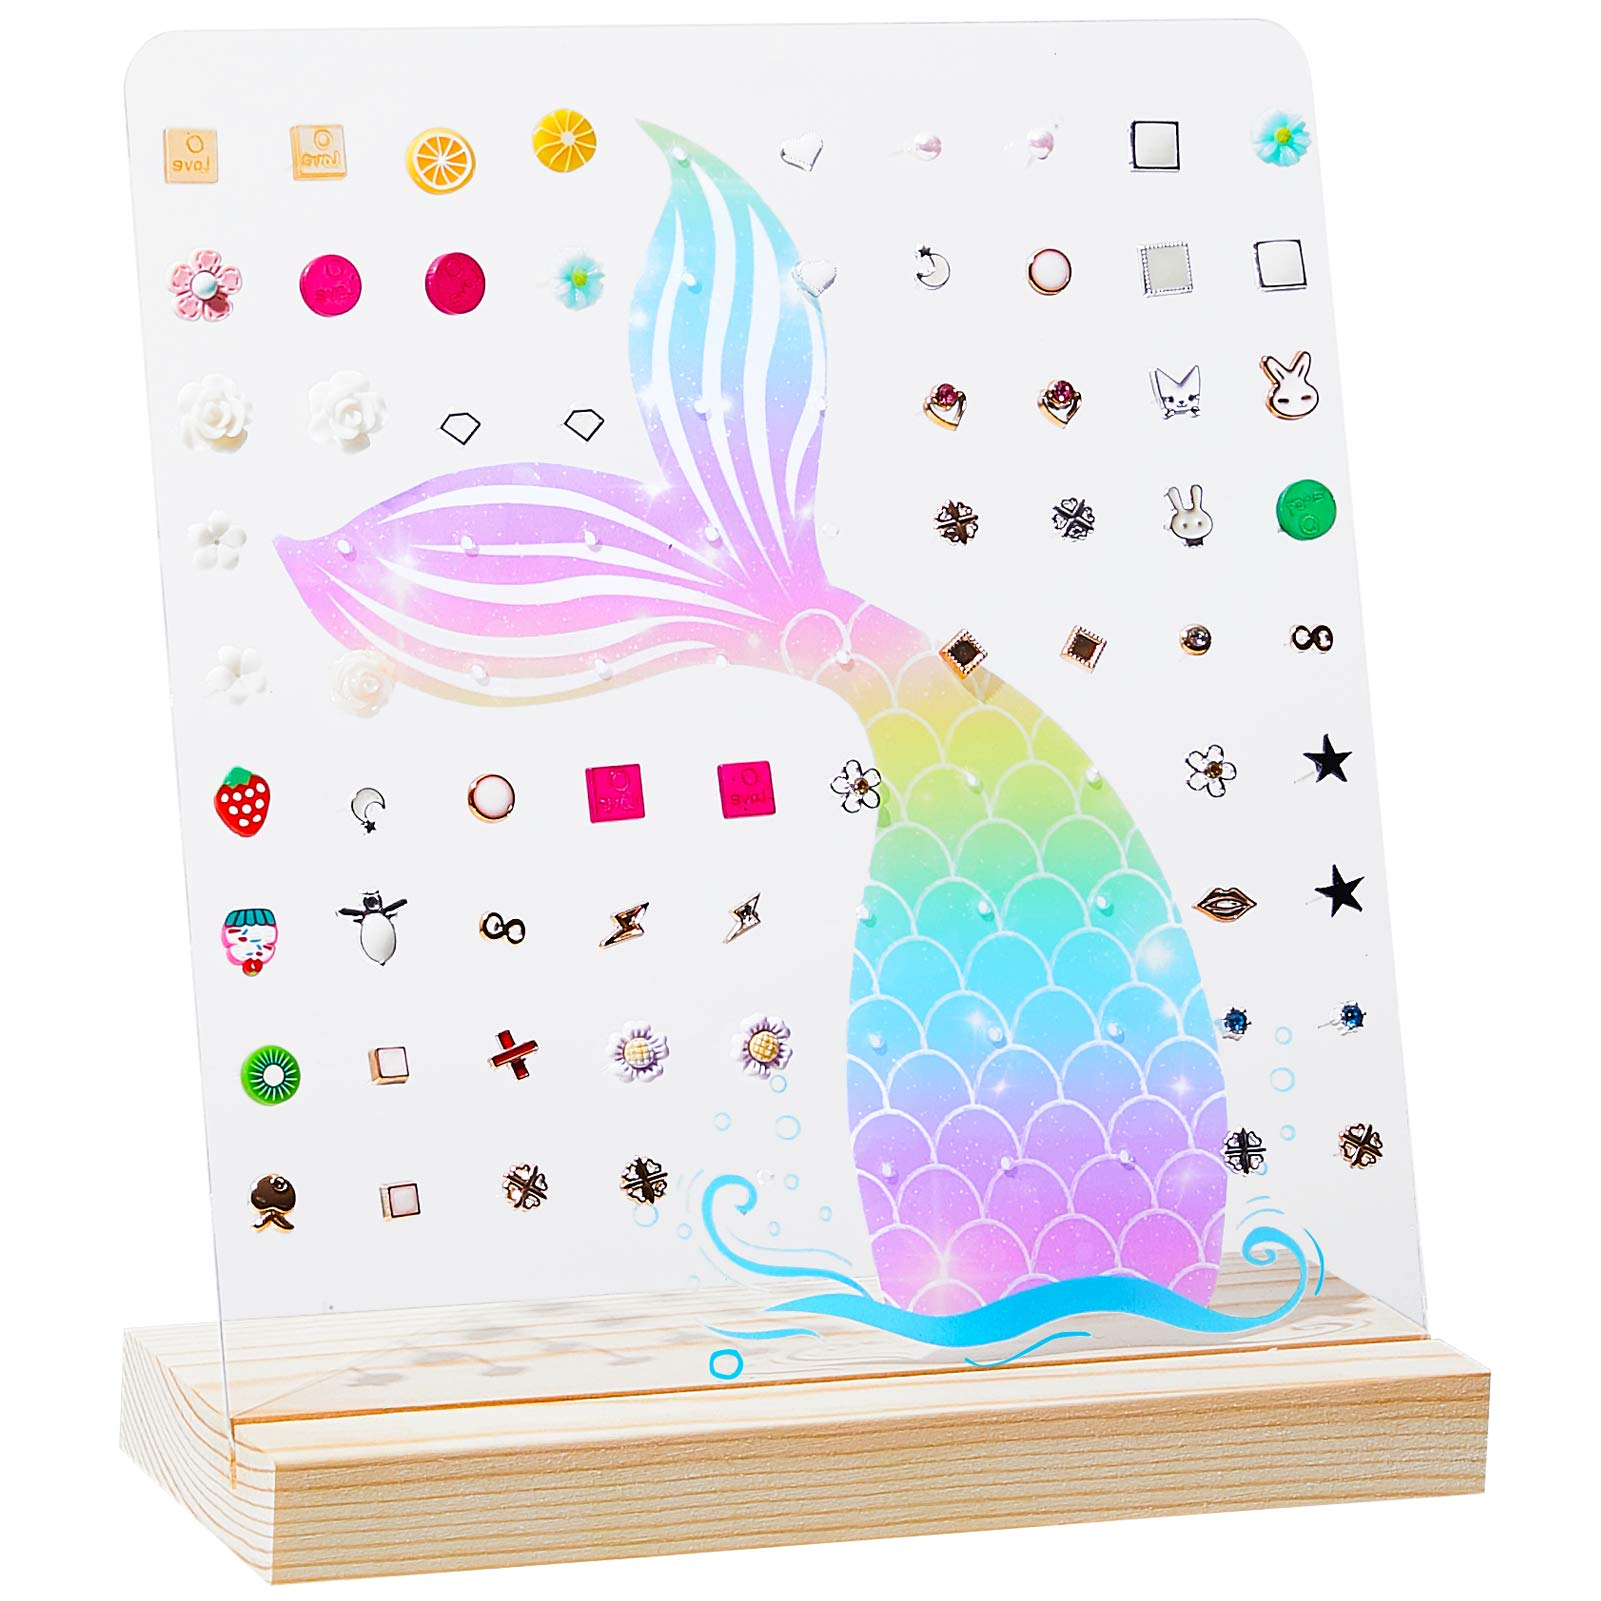 FIOBEE Girls Earring Holder Stand Mermaid Jewelry Organizer Acrylic Earring Display Ear Stud Storage for Kids with 90 Holes